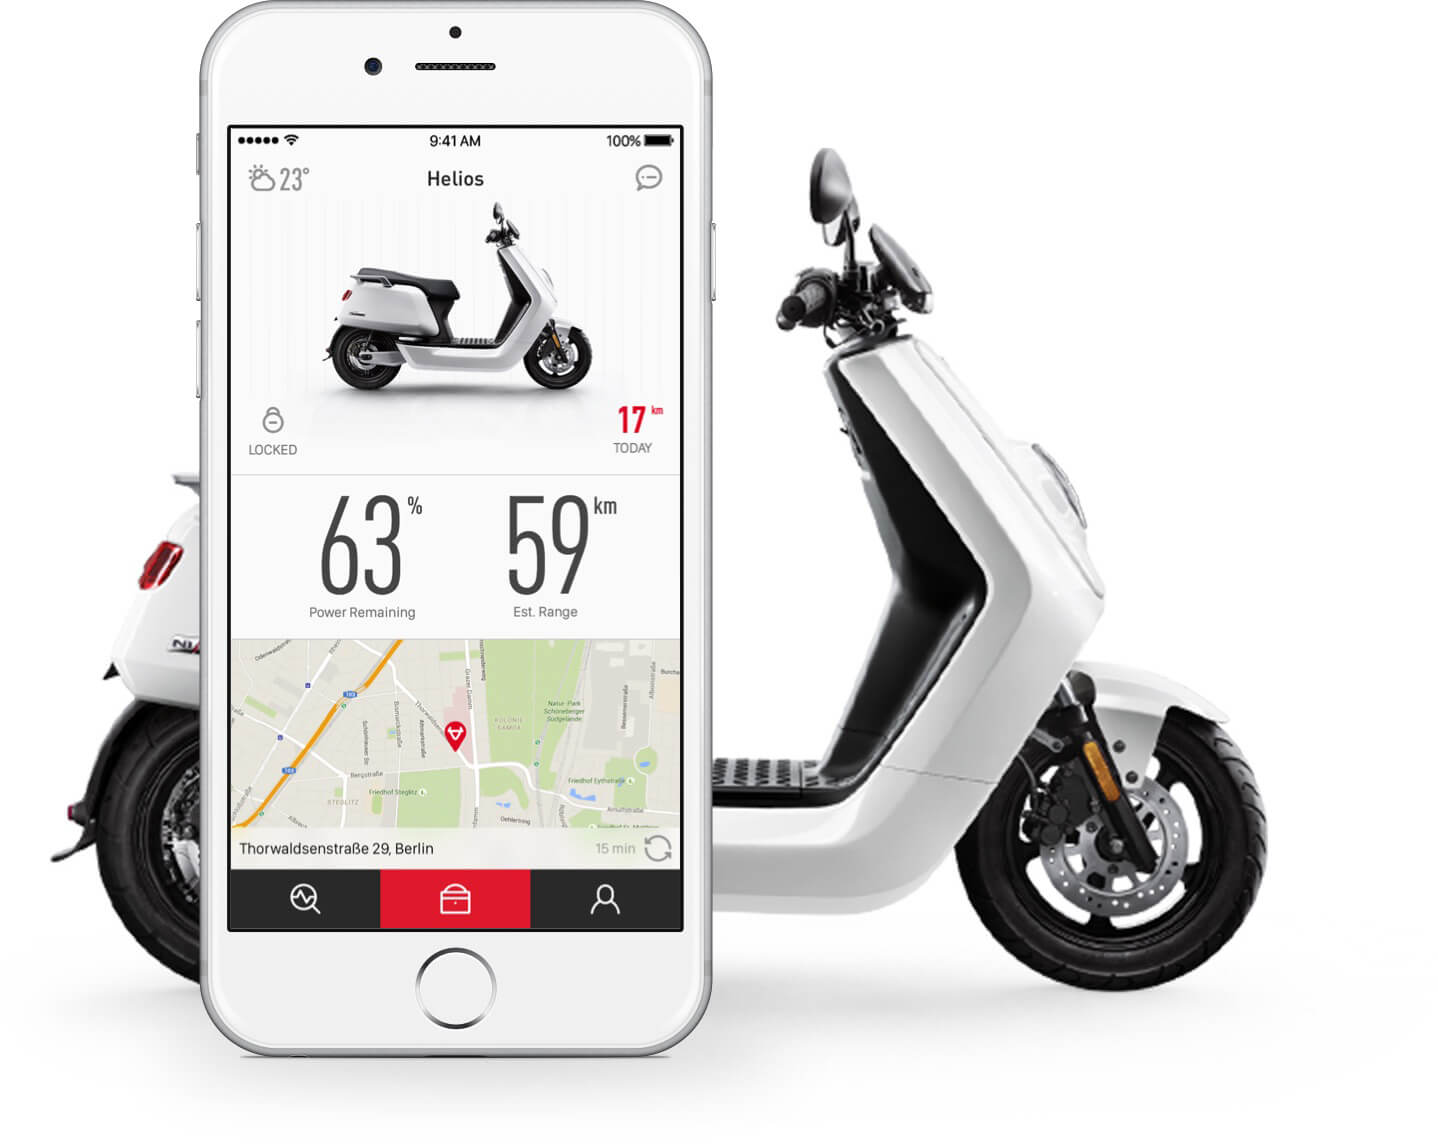 achat e-scooter paris-niu-paris